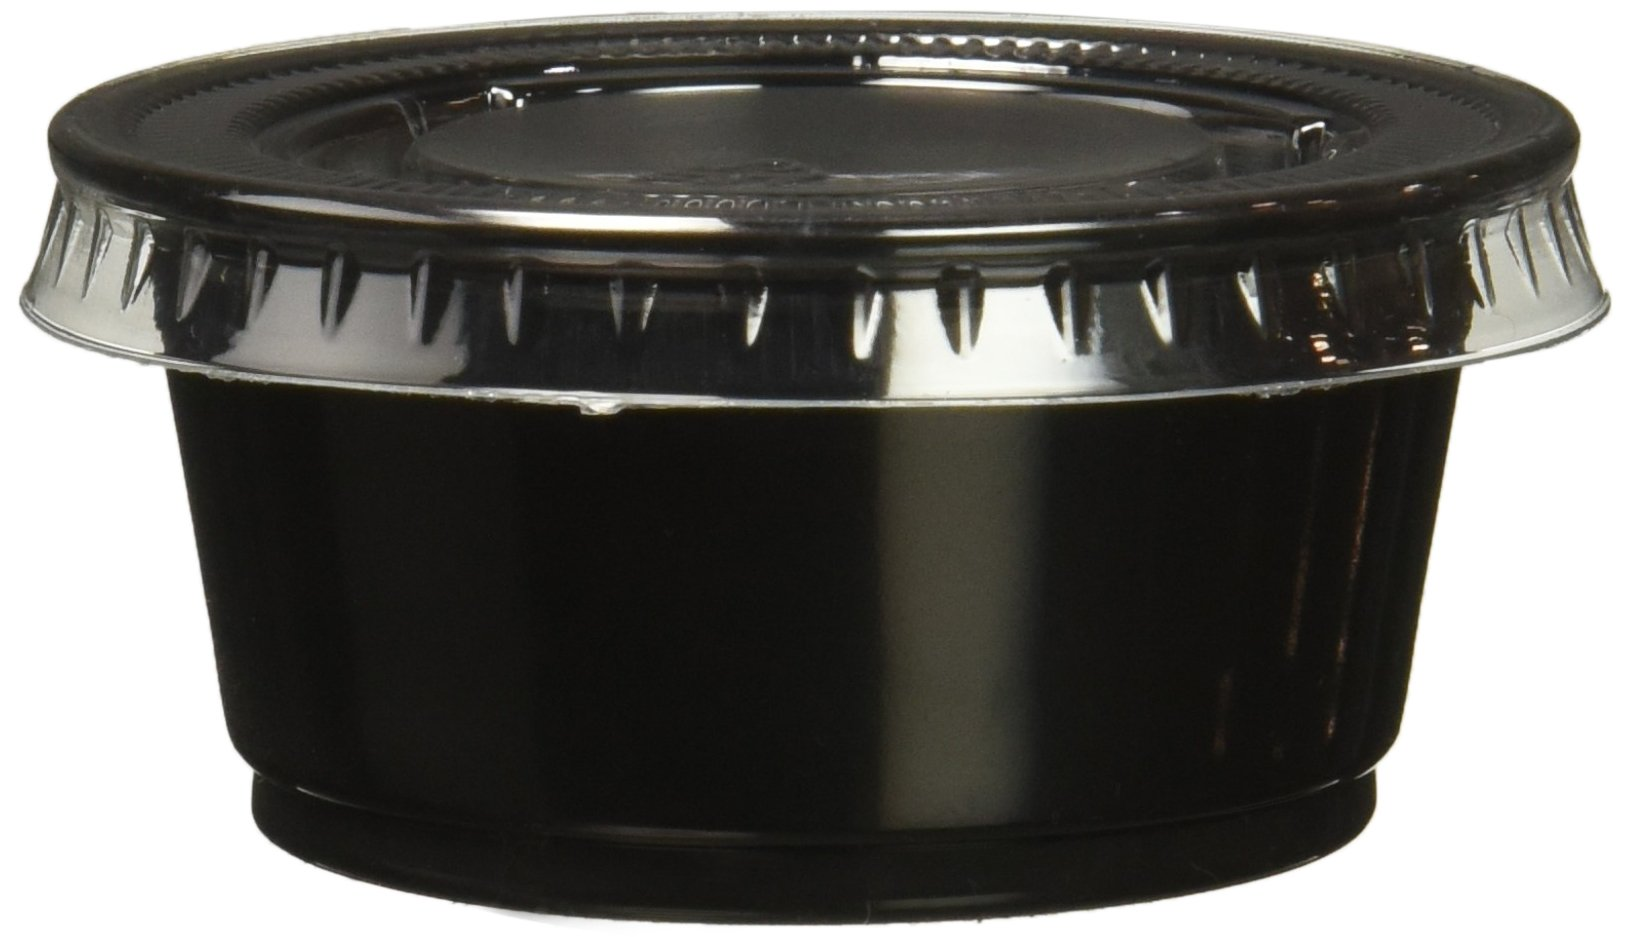 Polar Ice Plastic Black Jello Shot Cups with Lids, 2-Ounce, Black Cups, Package of 500 Cups and Lids